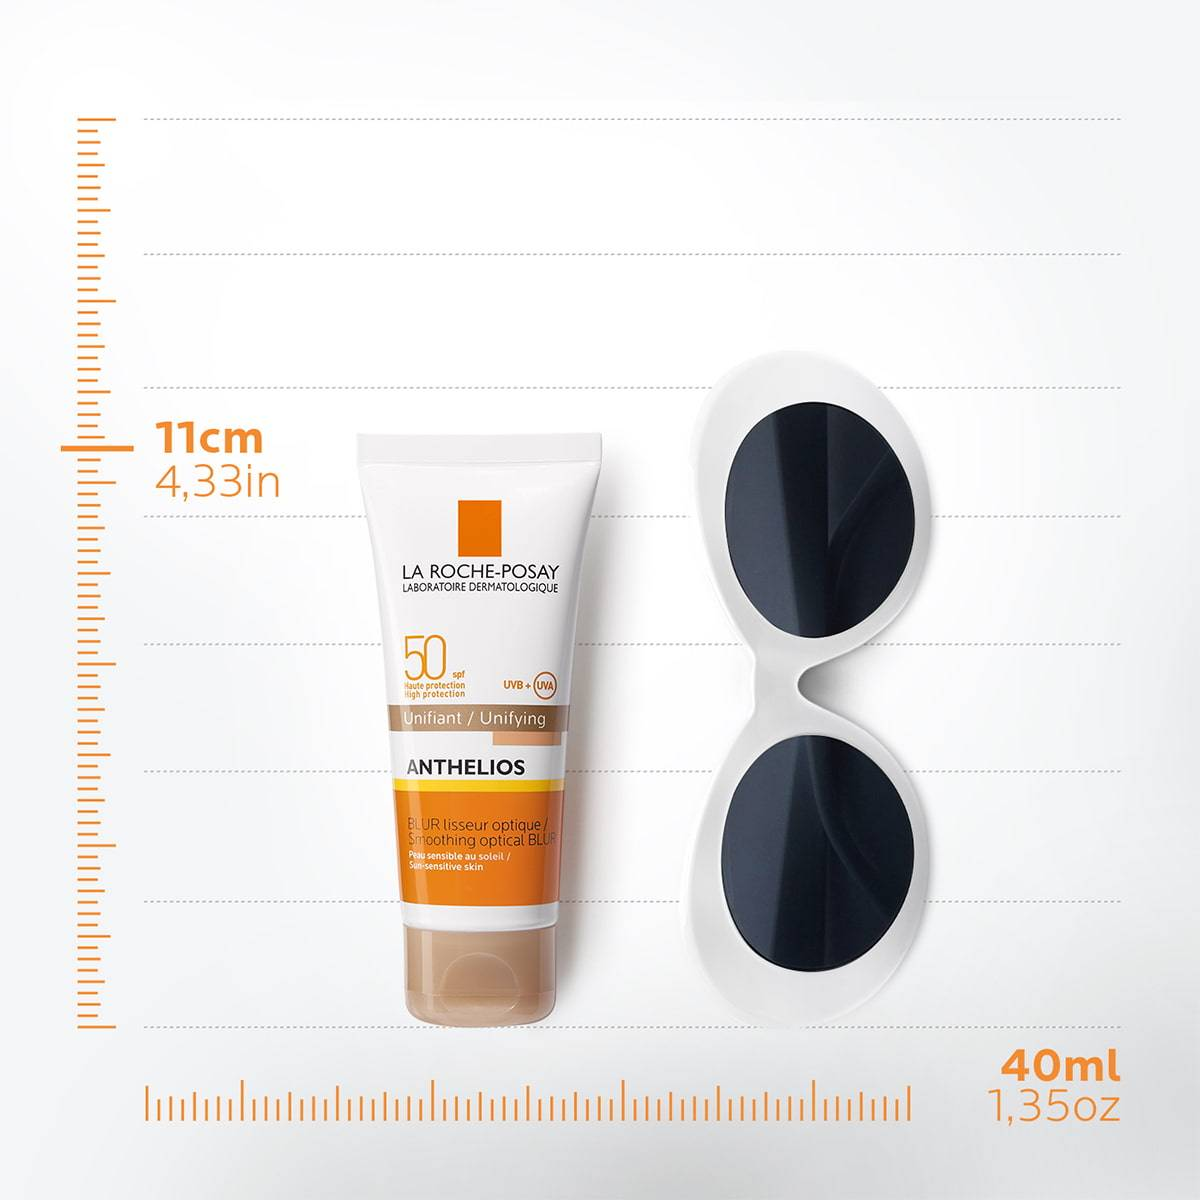 La Roche Posay ProductPage Sun Anthelios Smoothing Optical Blur Spf50